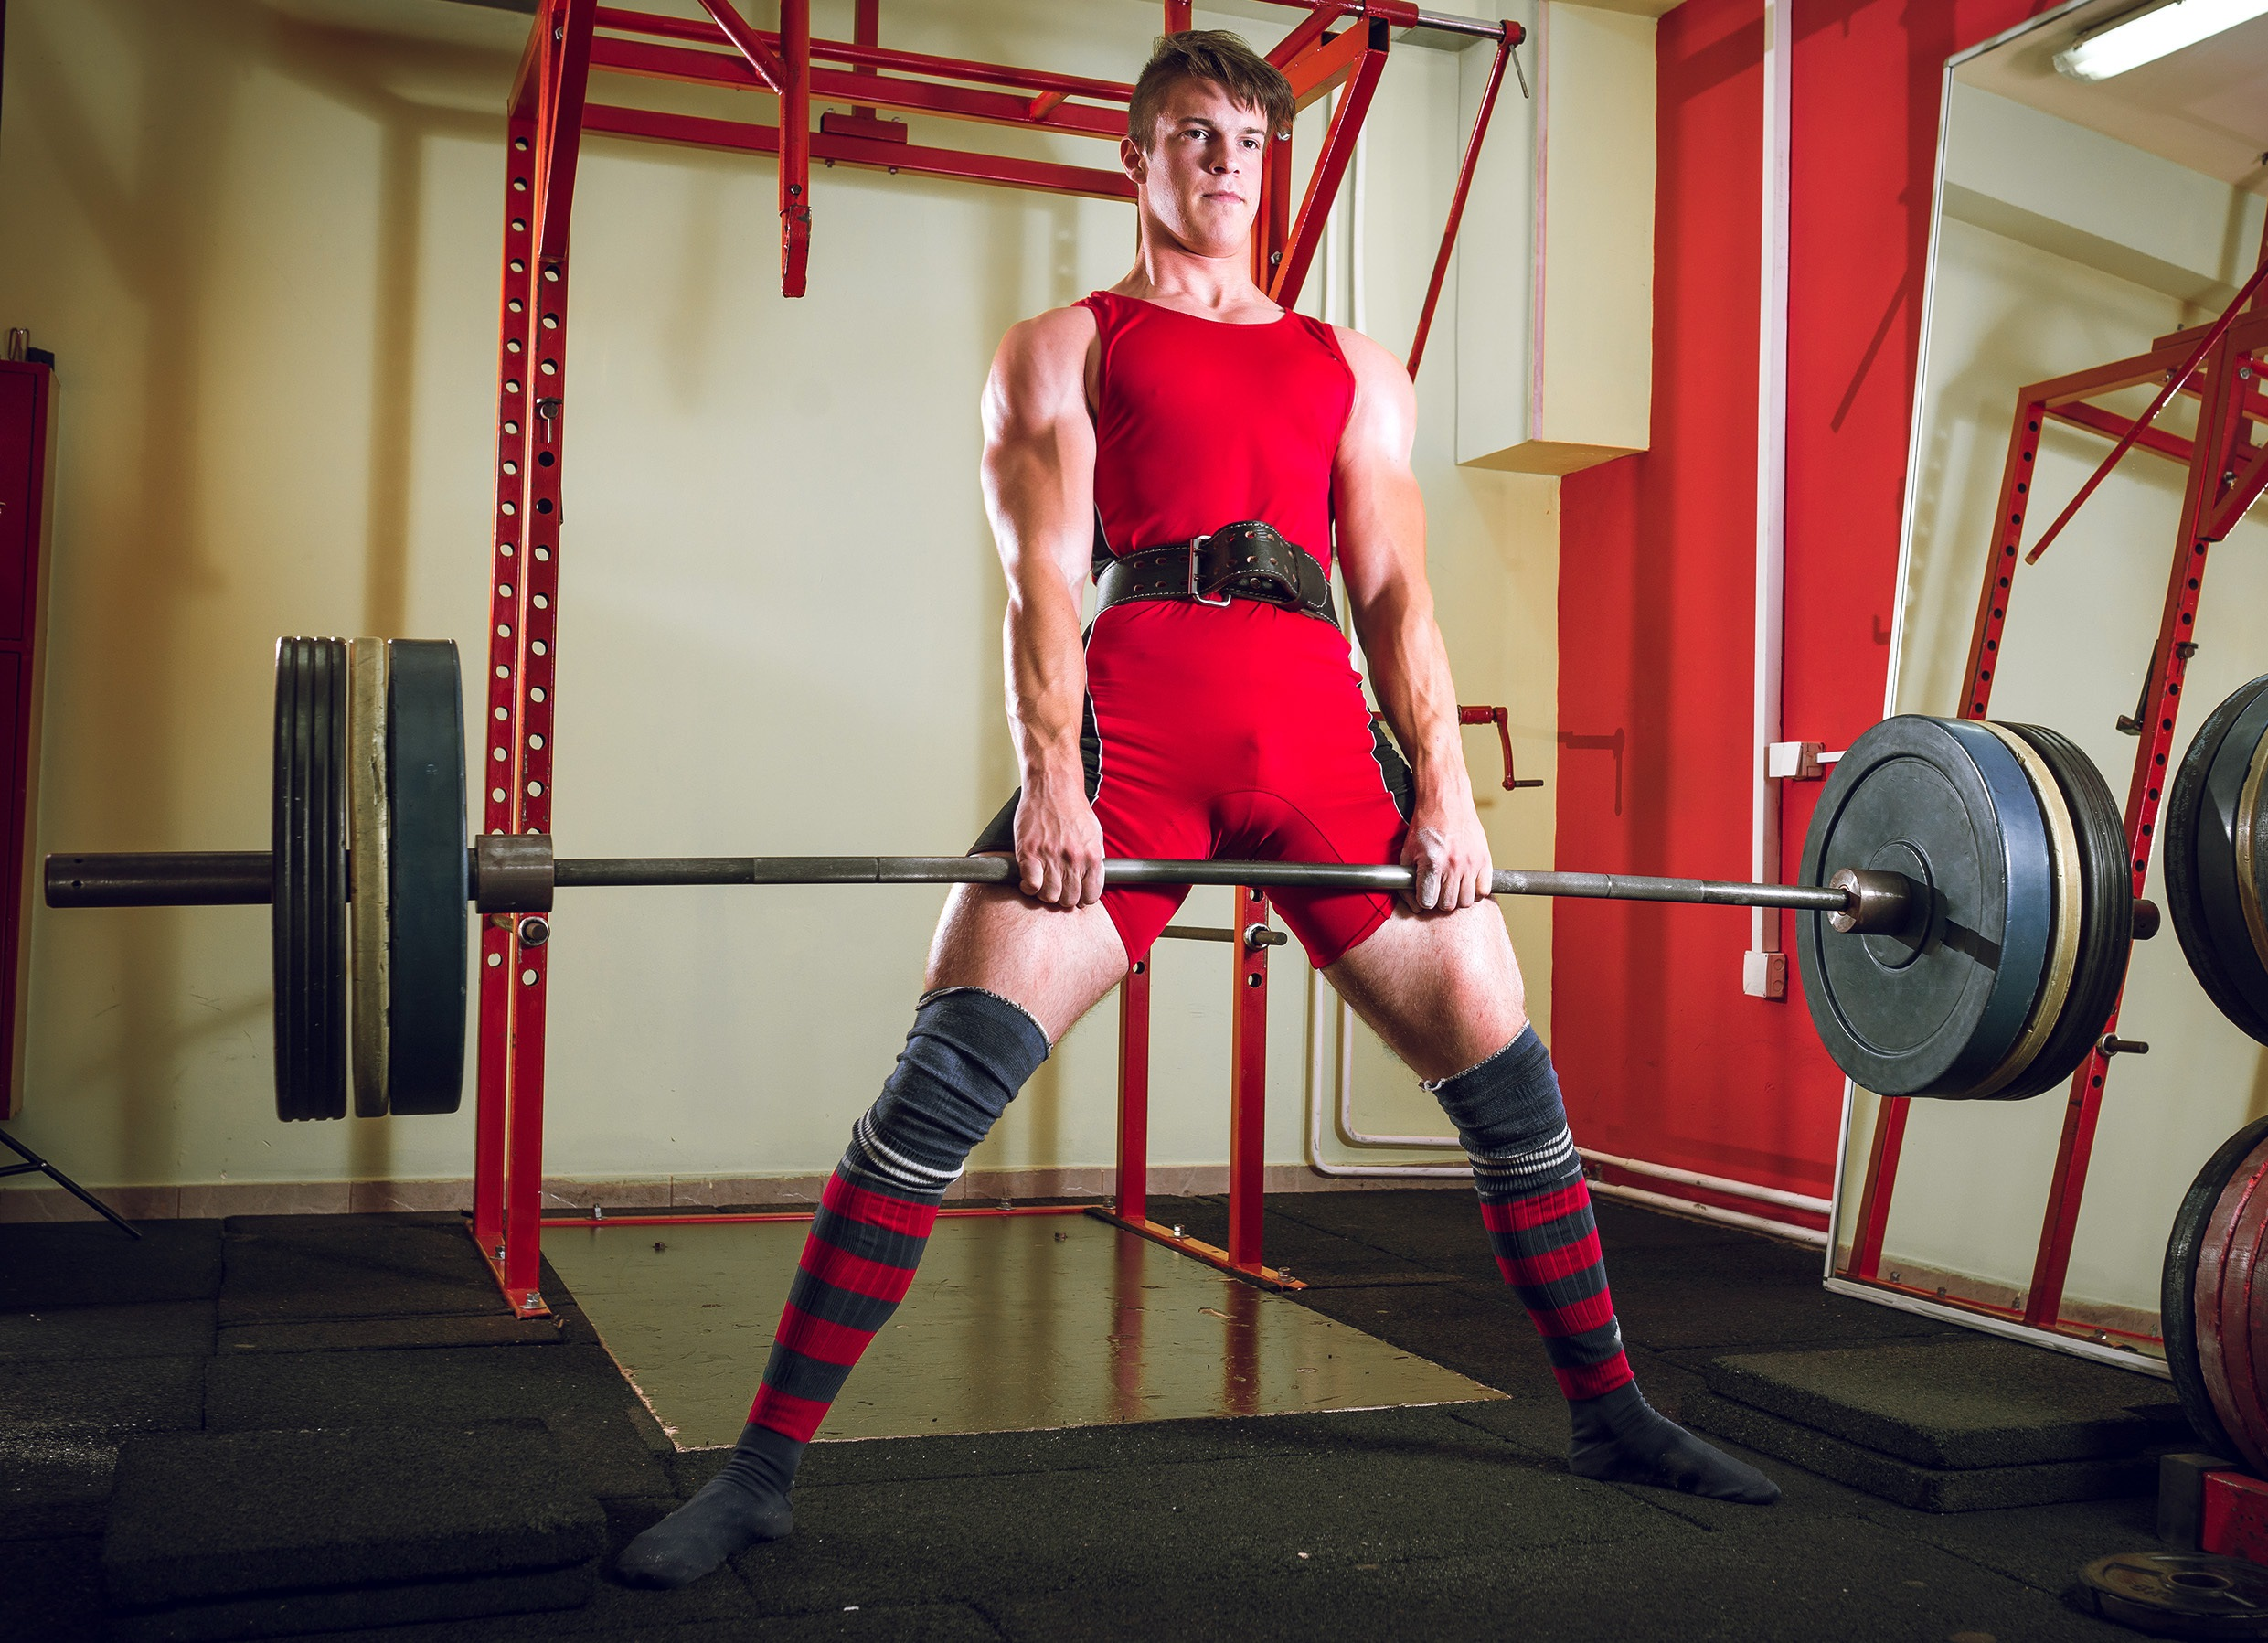 How to Get a Stronger Grip for the Deadlift